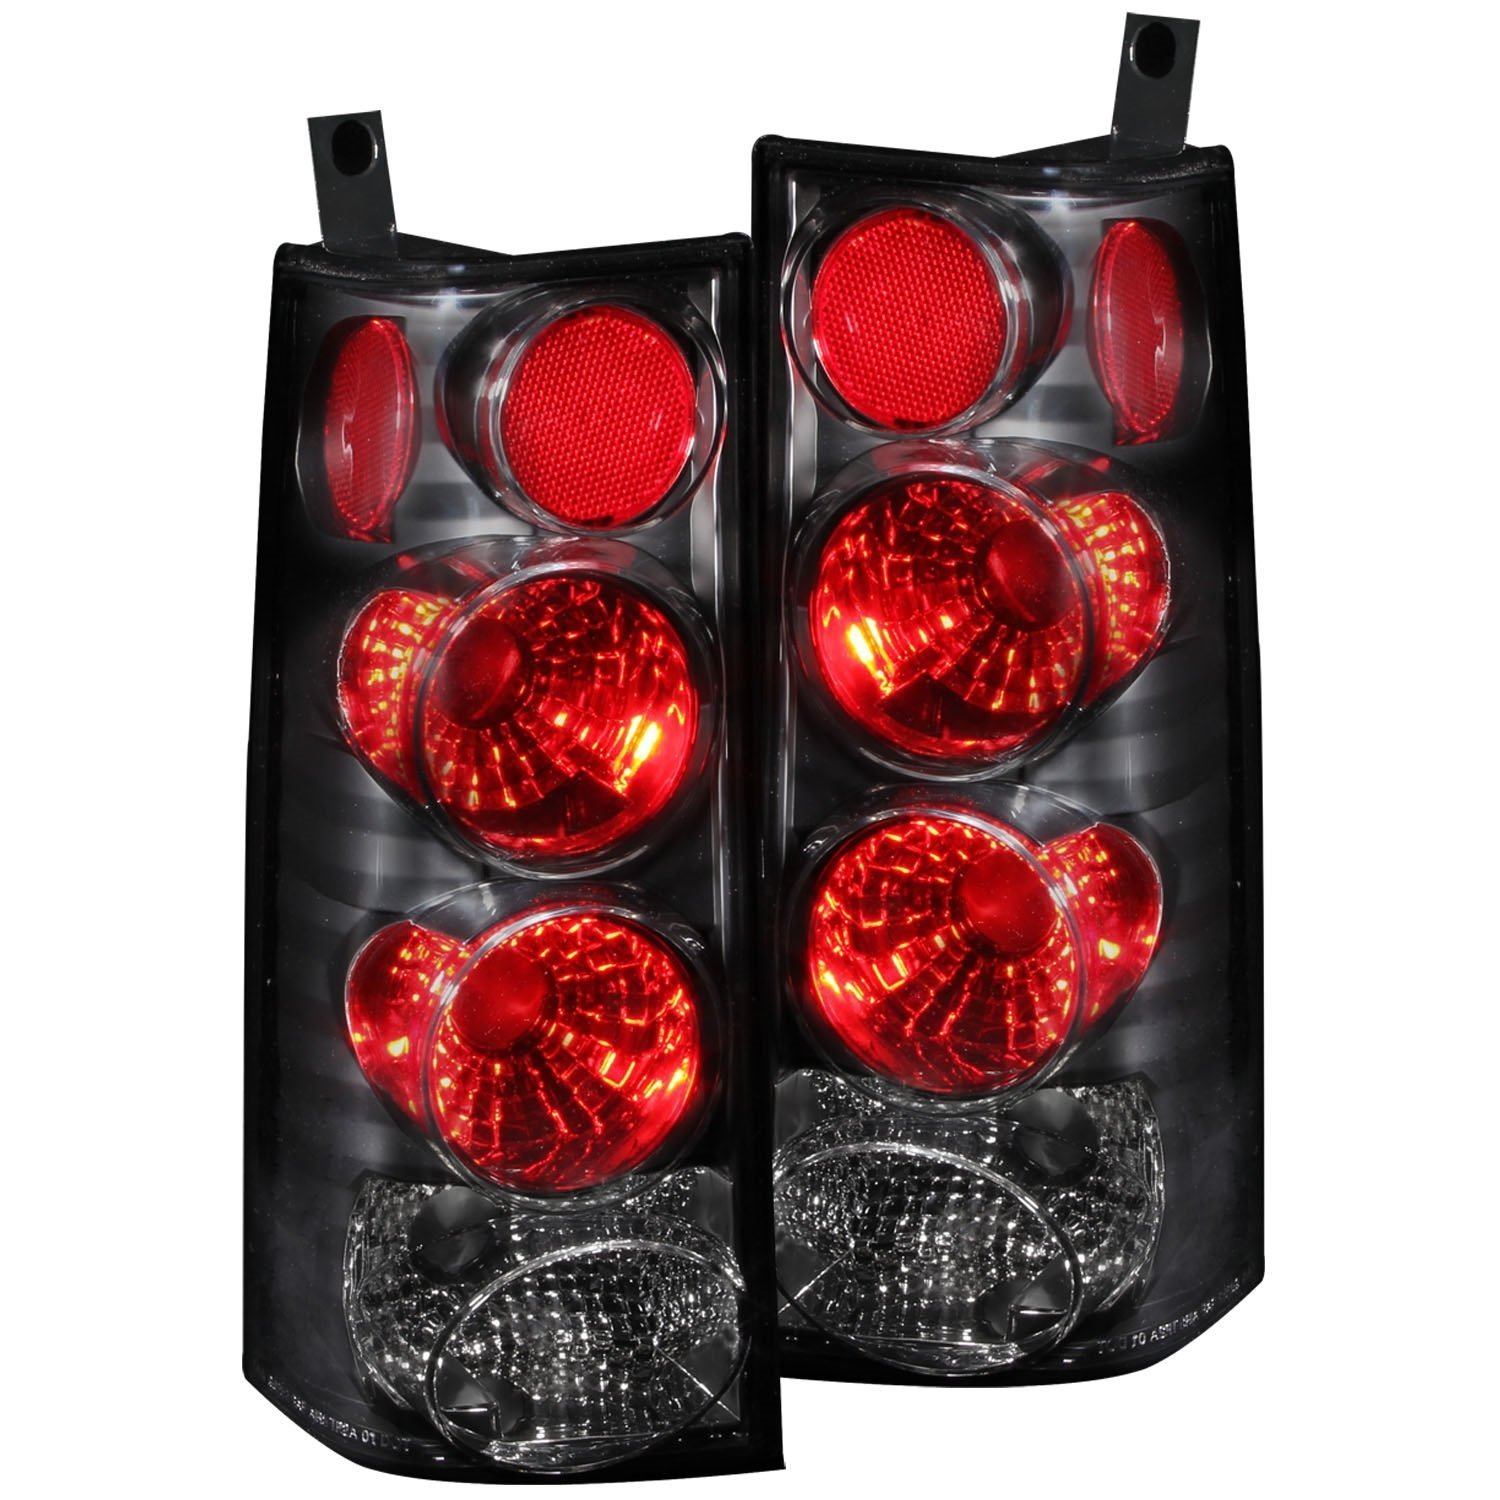 Amazon com 2003 2008 gmc savana chevy express van tail lights blk rear brake lamps drl fog automotive